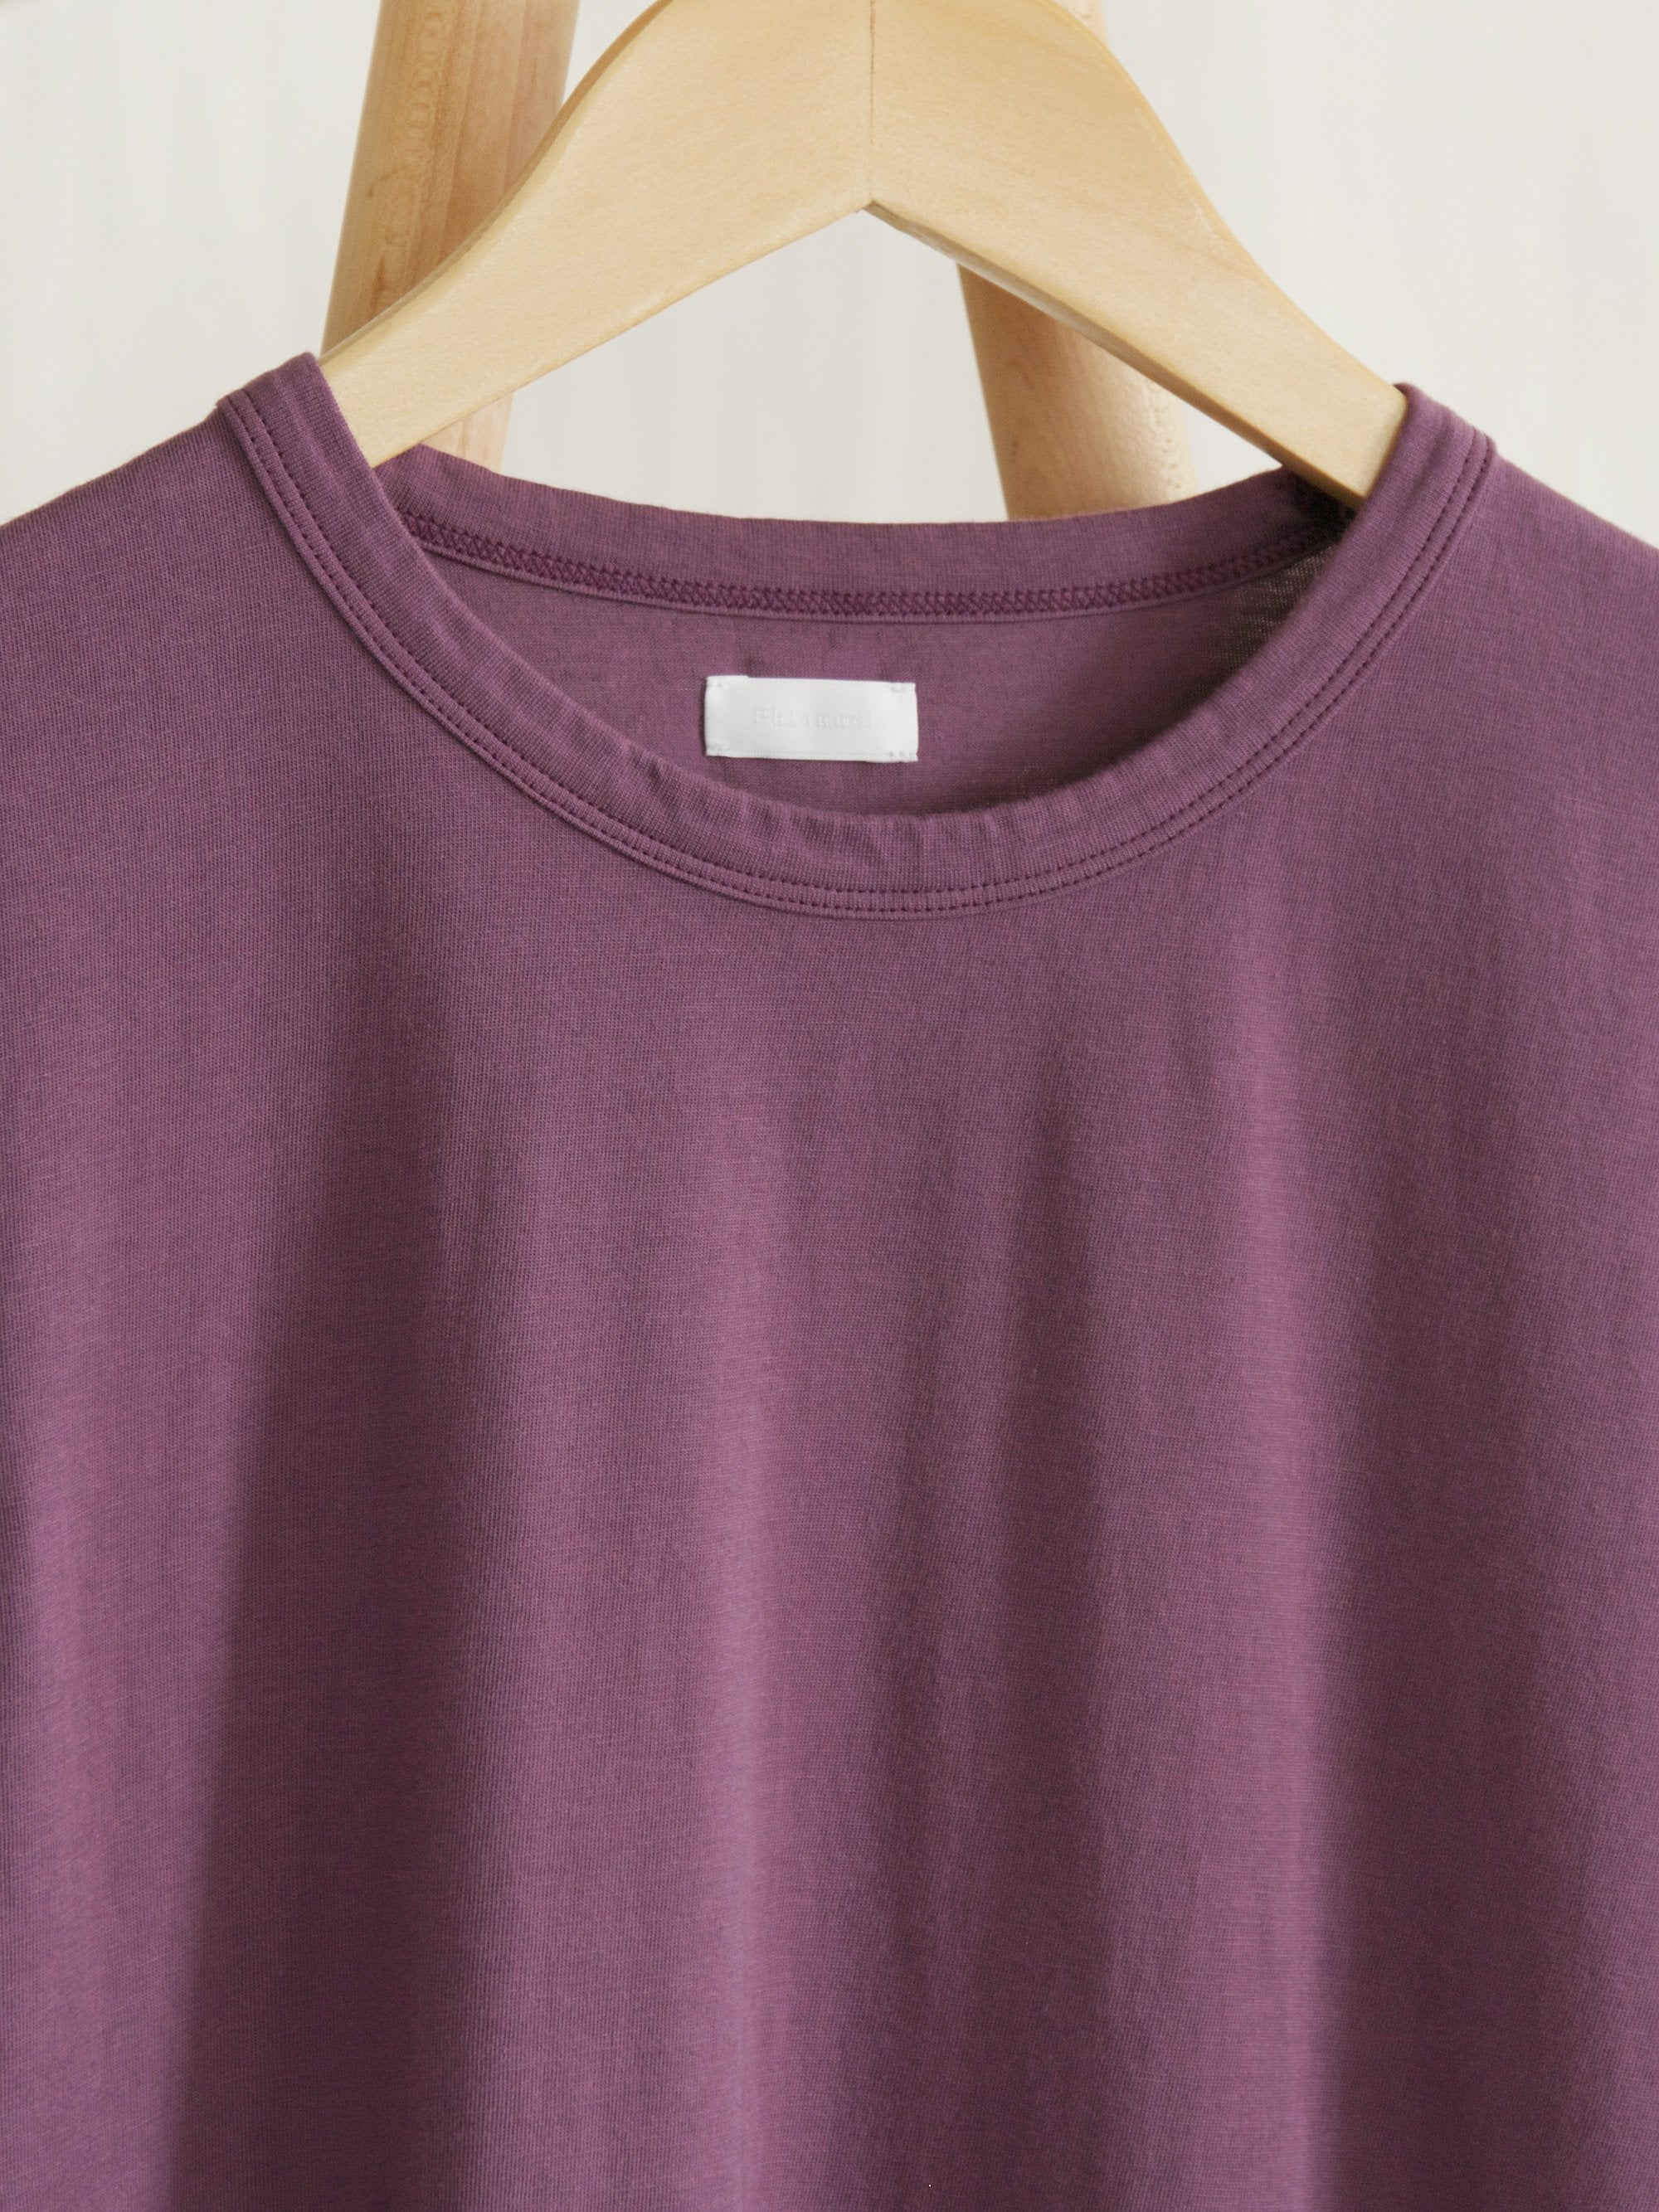 Namu Shop - Phlannel Light Suvin Cotton T-Shirt - Lavender (Women's)